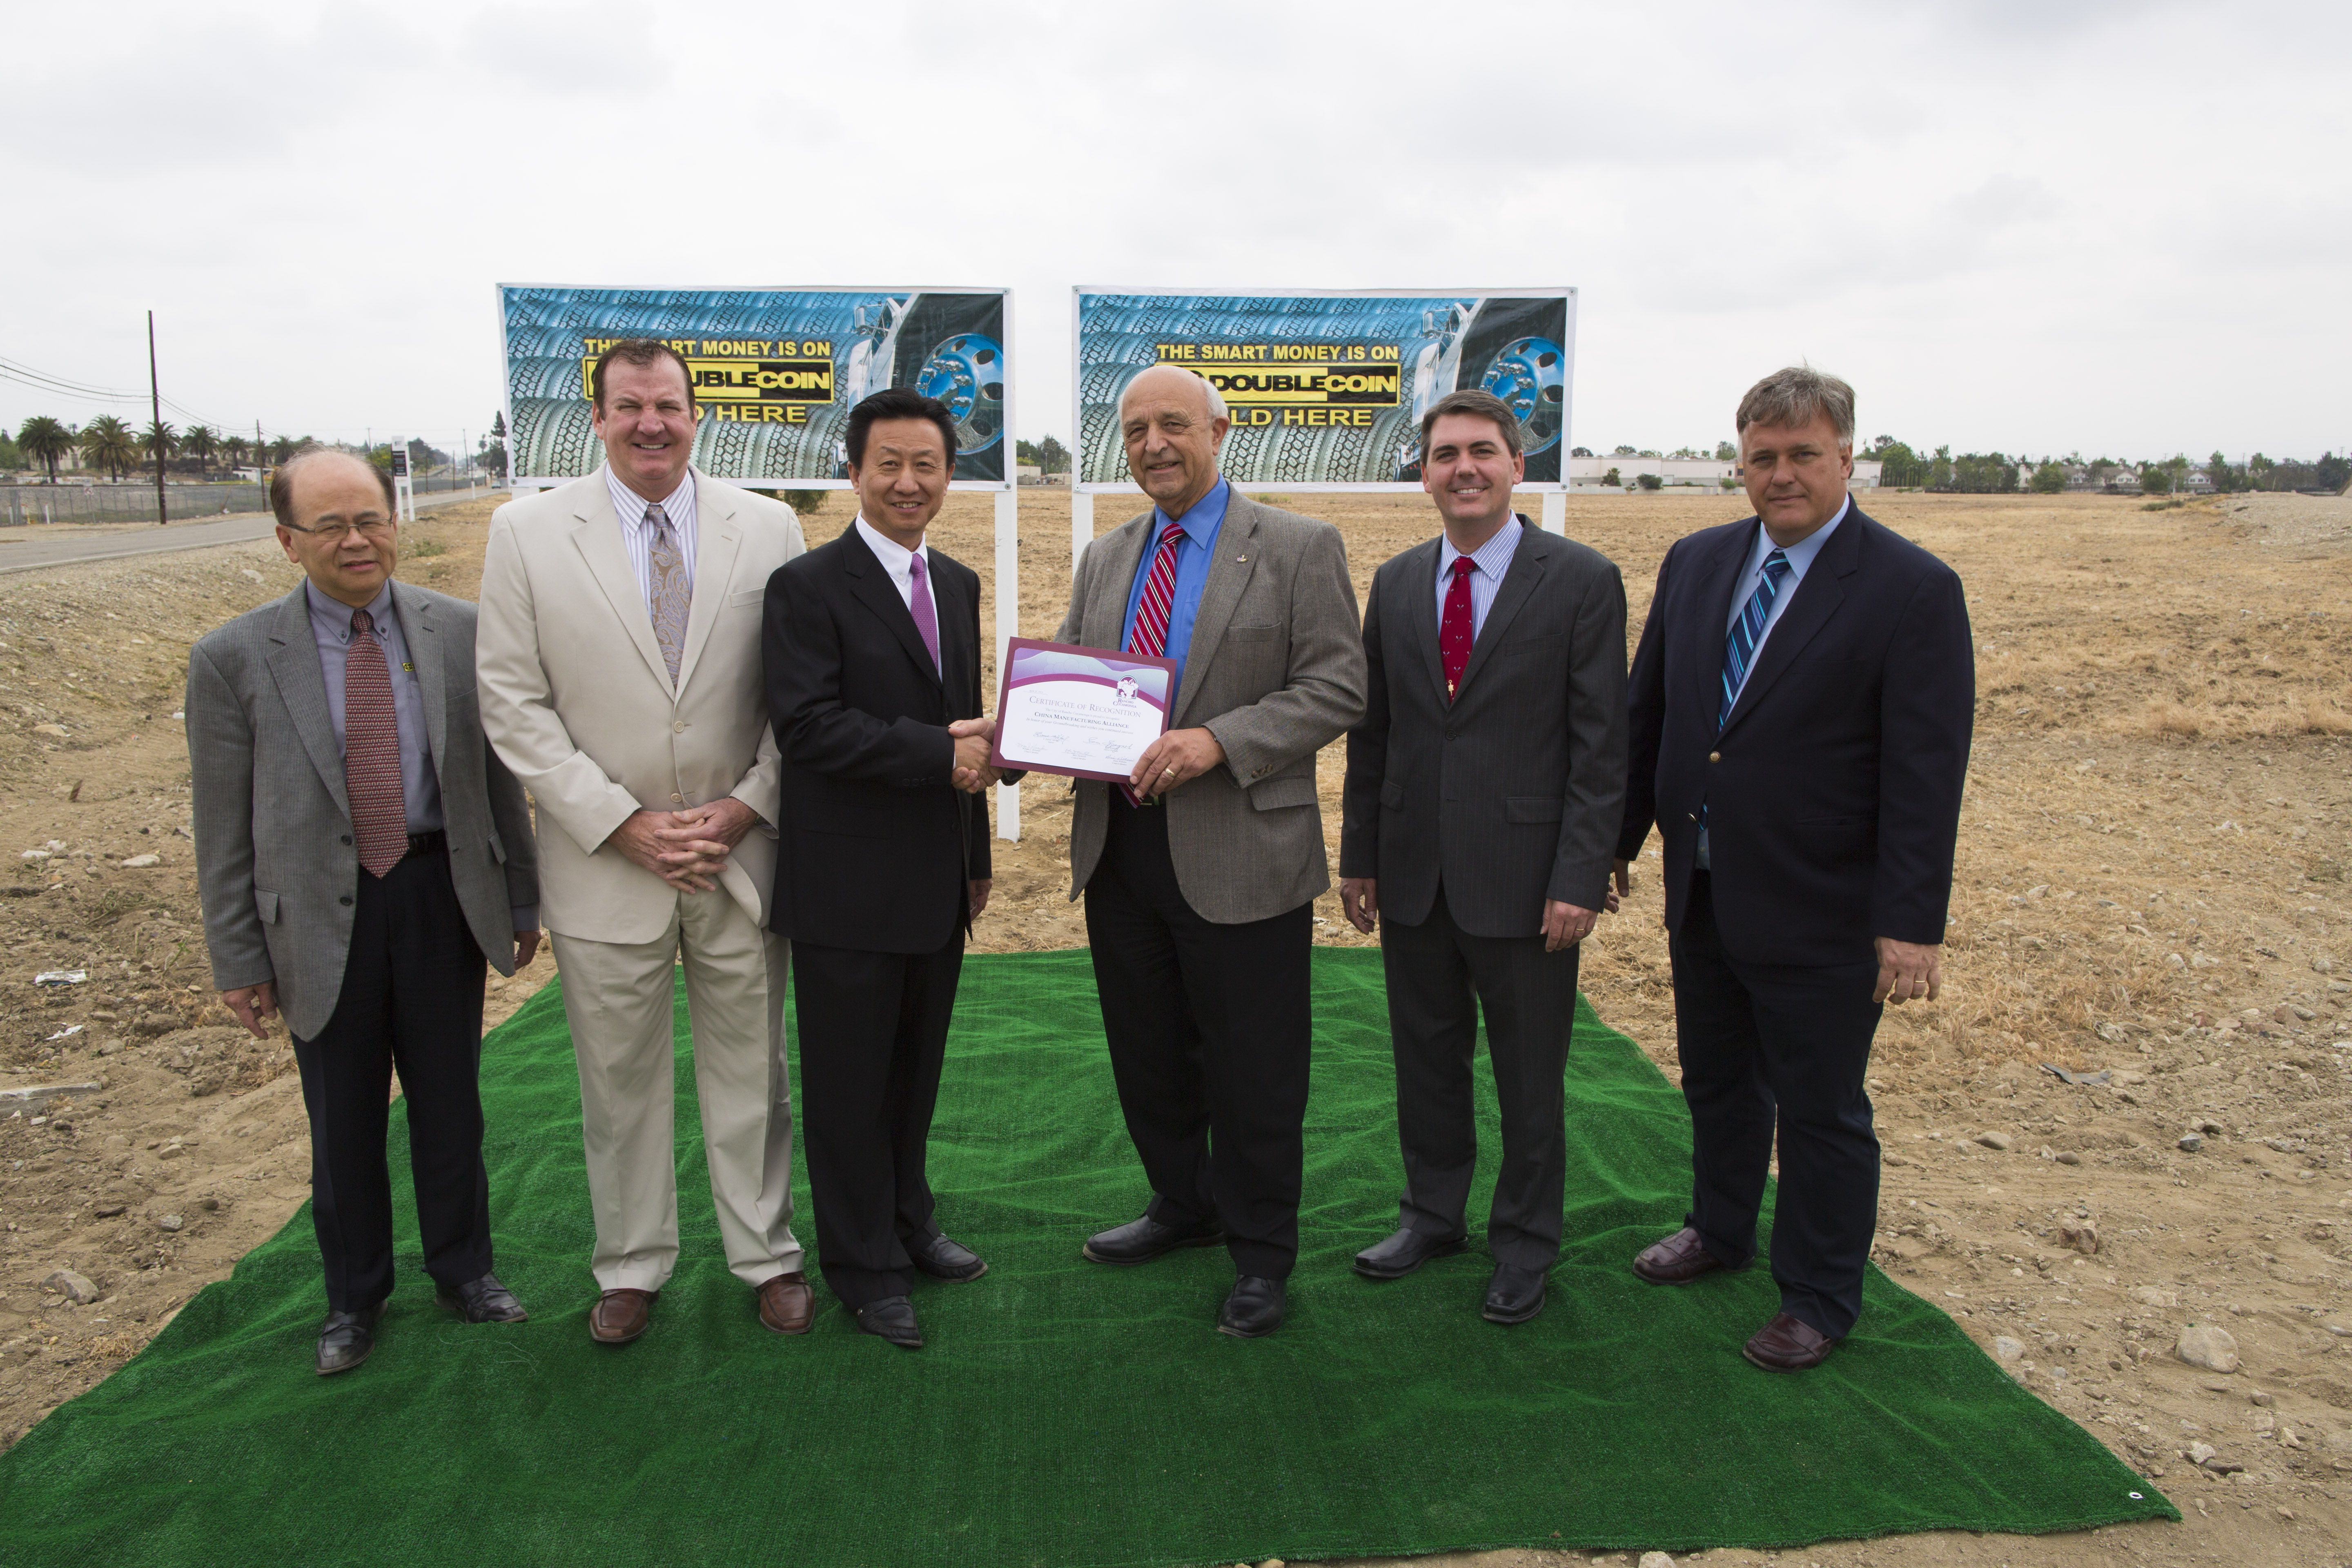 CMA breaks ground on a new distribution center